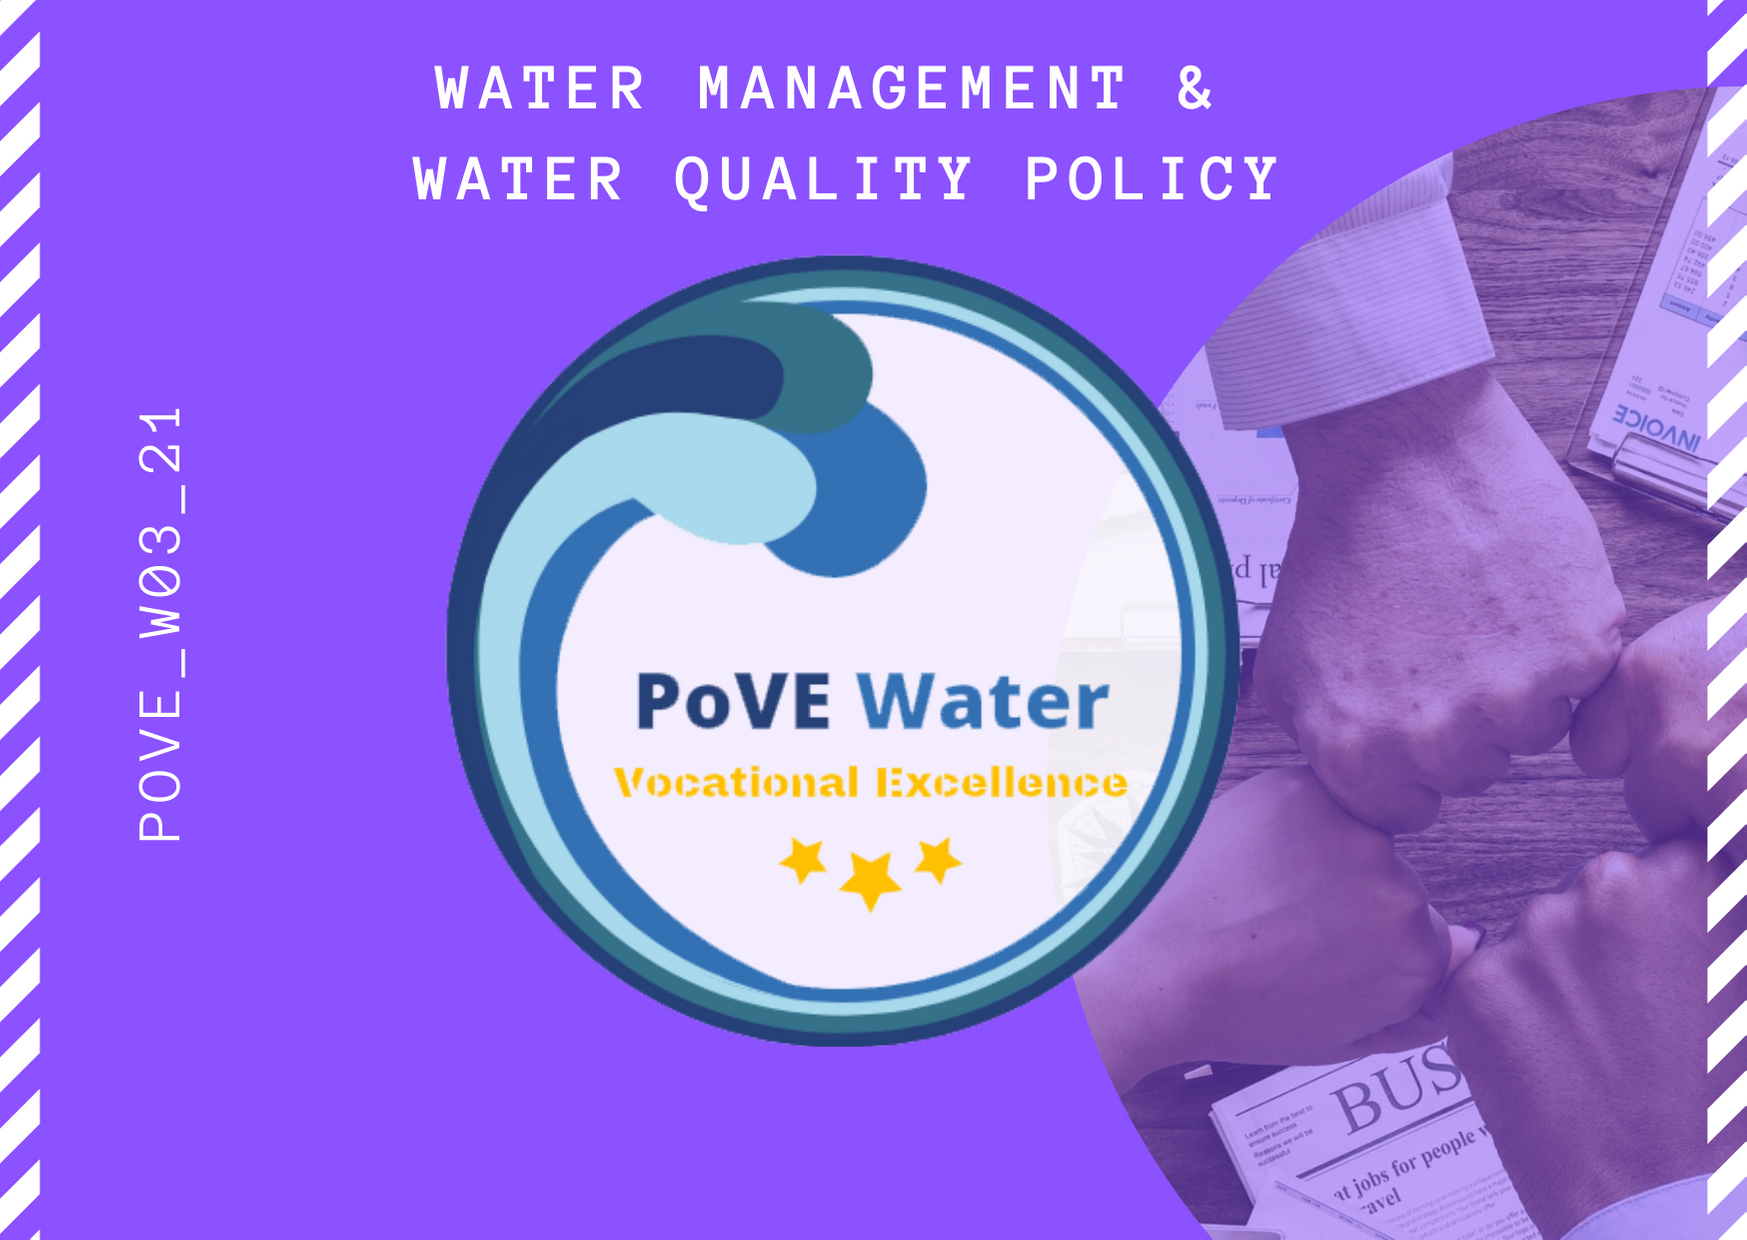 Water Management & Water Quality Policy